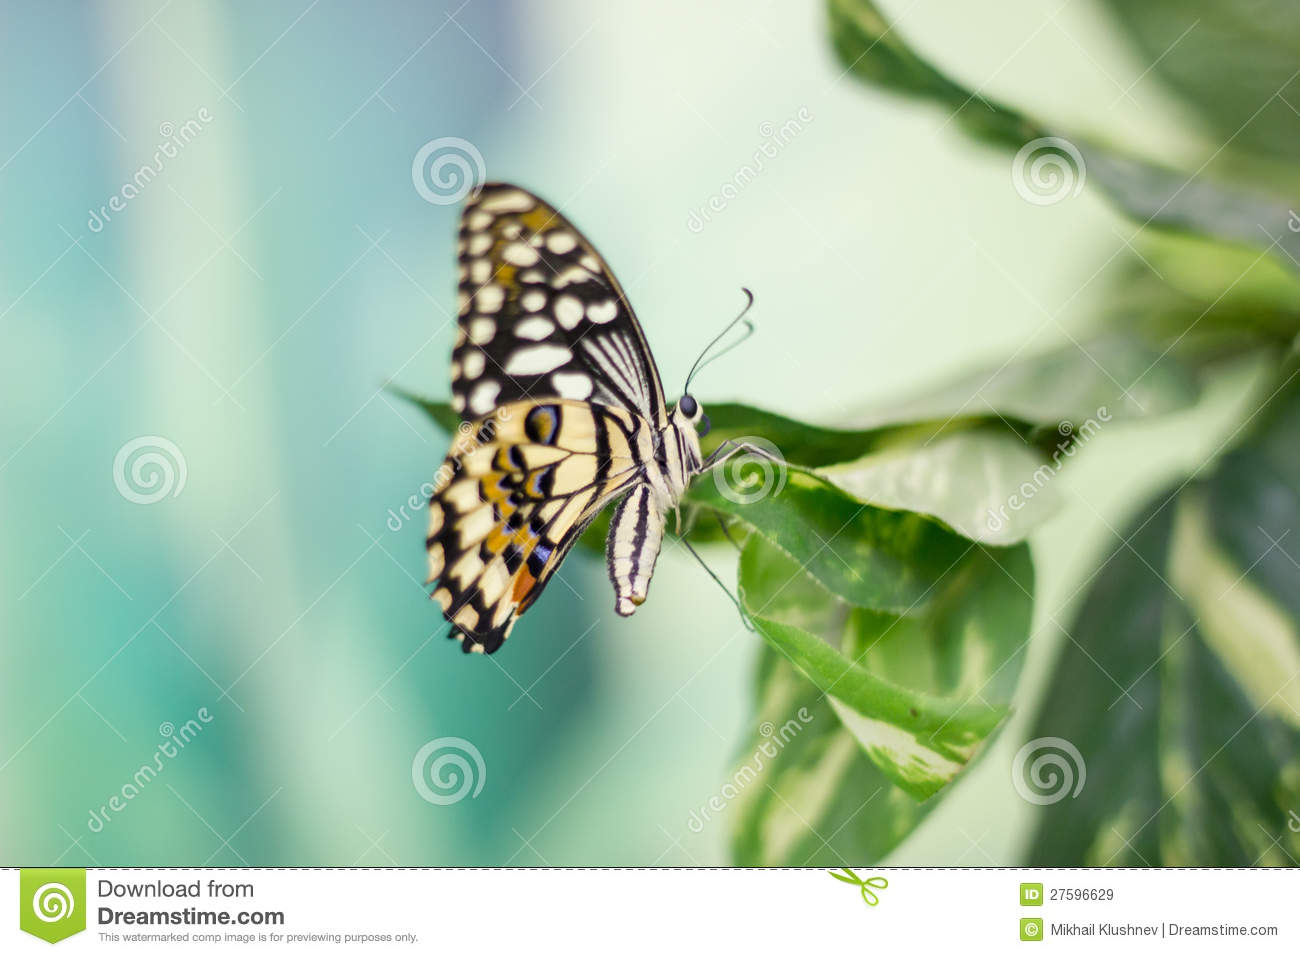 Beauty Butterfly In Nature Royalty Free Stock Images - Image: 27596629